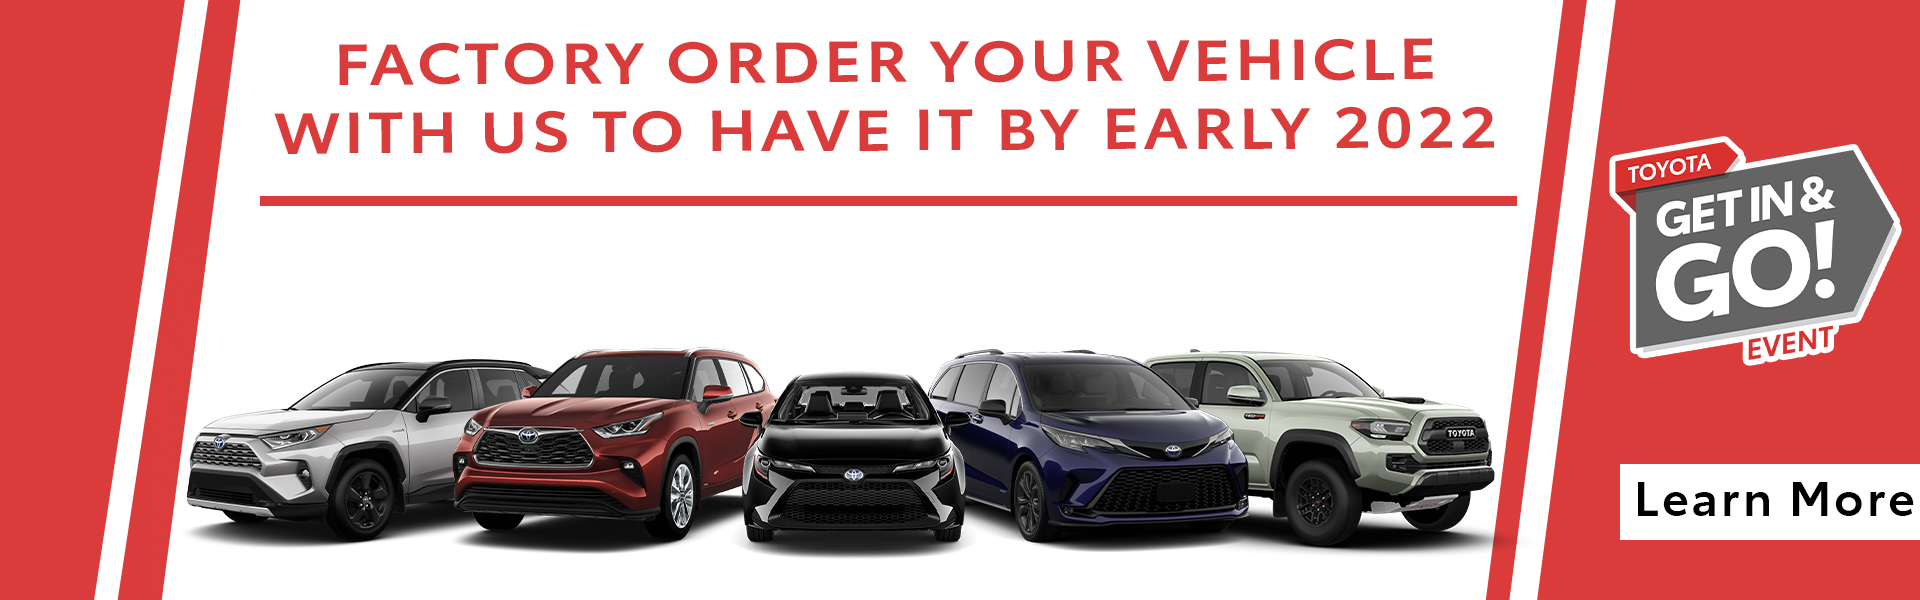 FACTORY-ORDER-VEHICLES